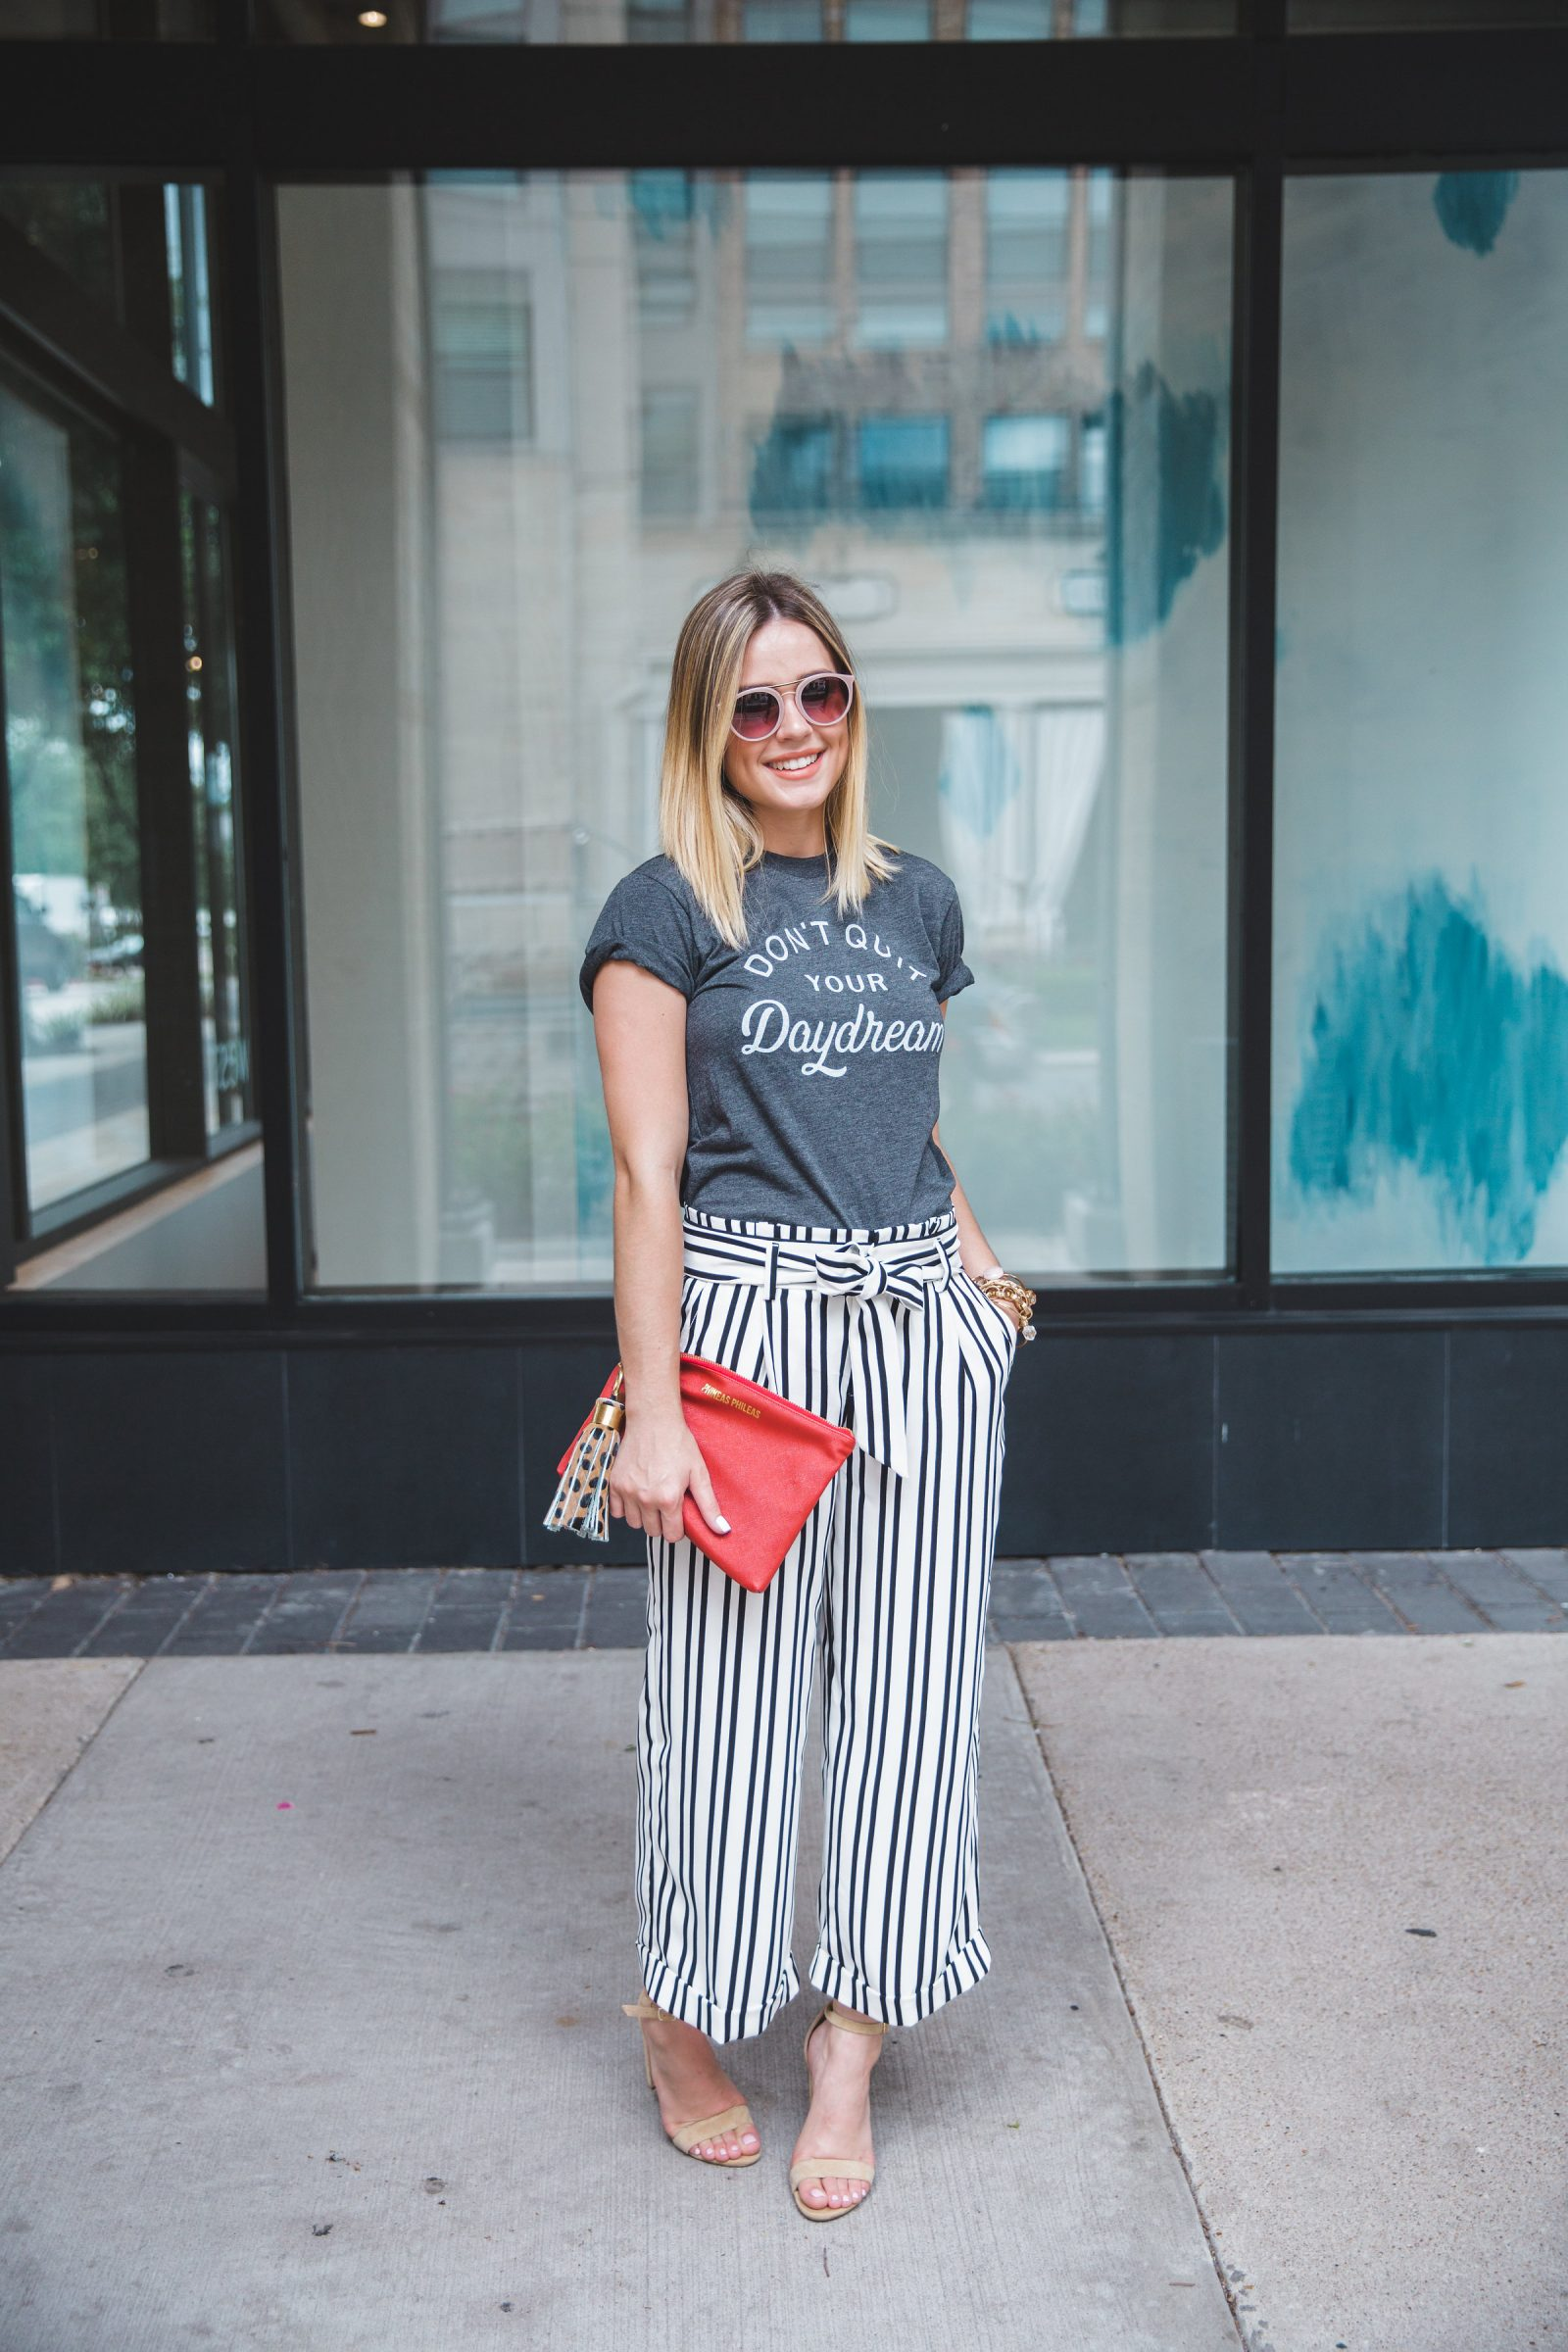 Houston fashion blogger Elly brown wears paper-waist bottoms and a graphic tee